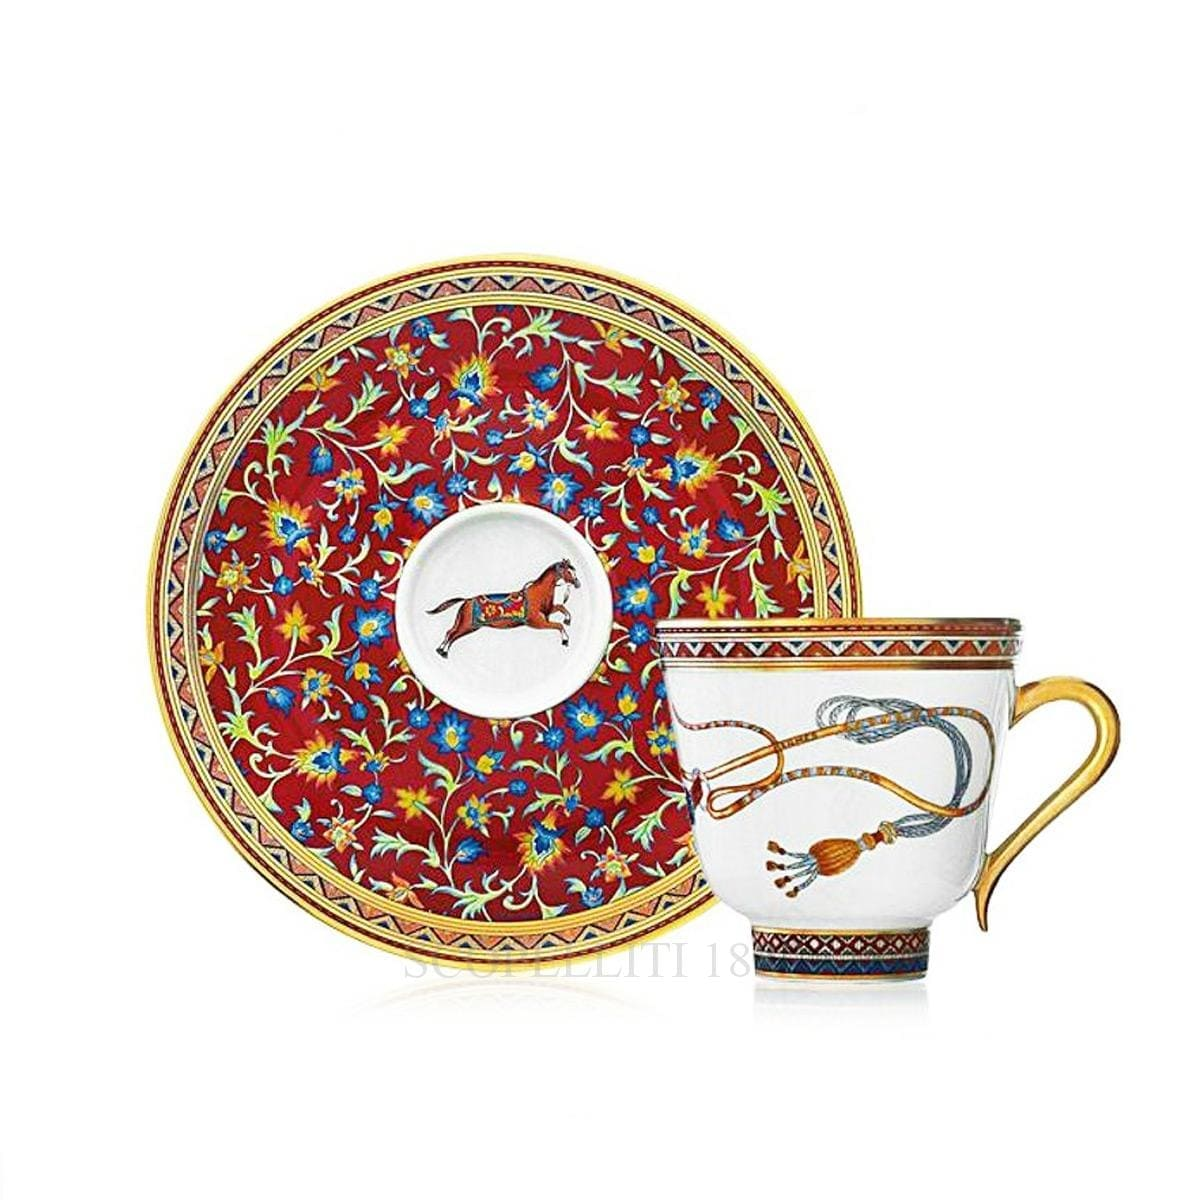 hermes paris cheval dorient designer porcelain coffee cup and saucer